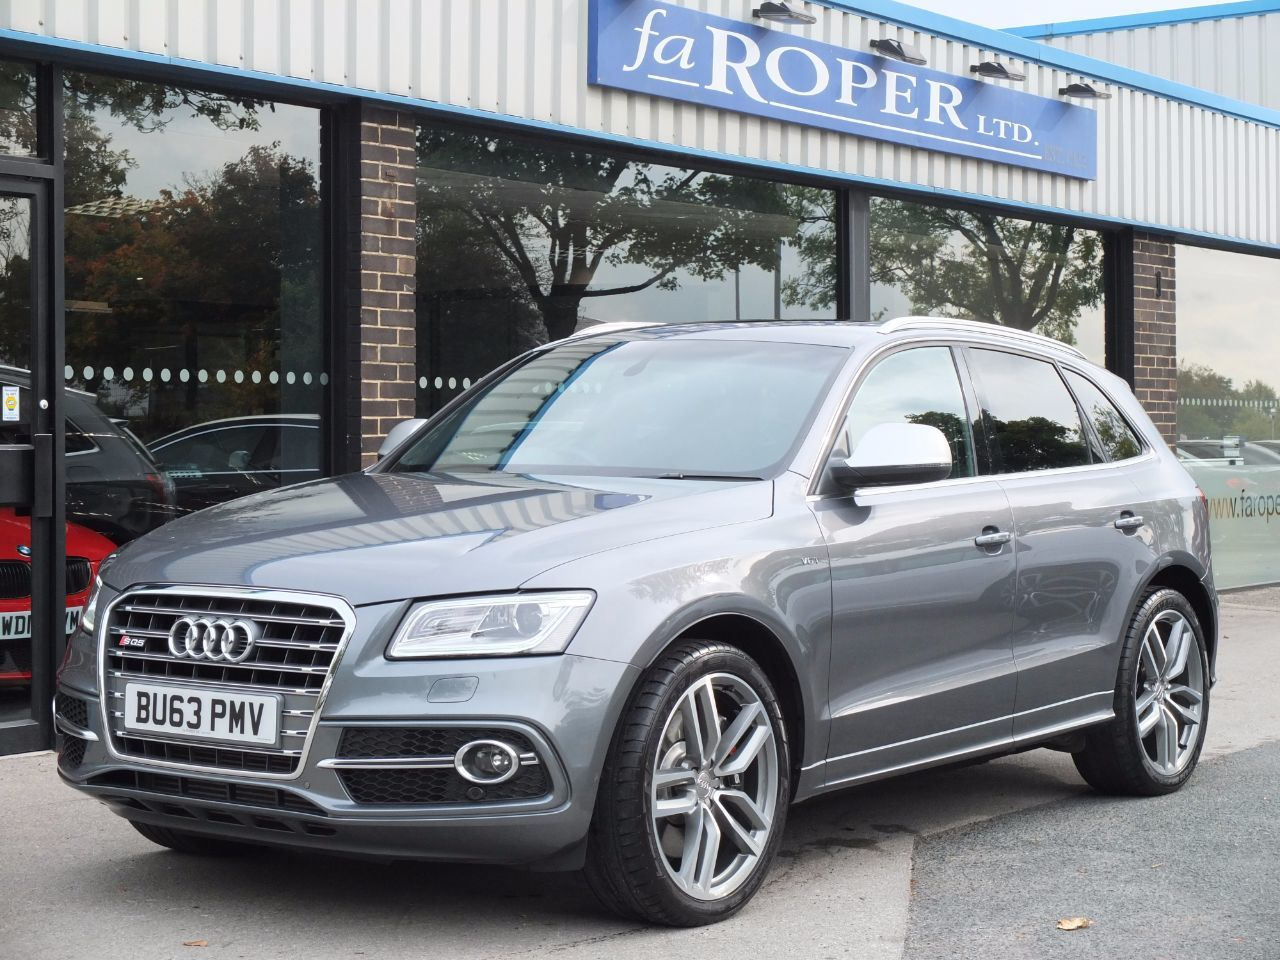 Audi Q5 3.0 SQ5 quattro Tiptronic Auto 313ps  ++++Spec Estate Diesel Monsoon Grey MetallicAudi Q5 3.0 SQ5 quattro Tiptronic Auto 313ps  ++++Spec Estate Diesel Monsoon Grey Metallic at fa Roper Ltd Bradford